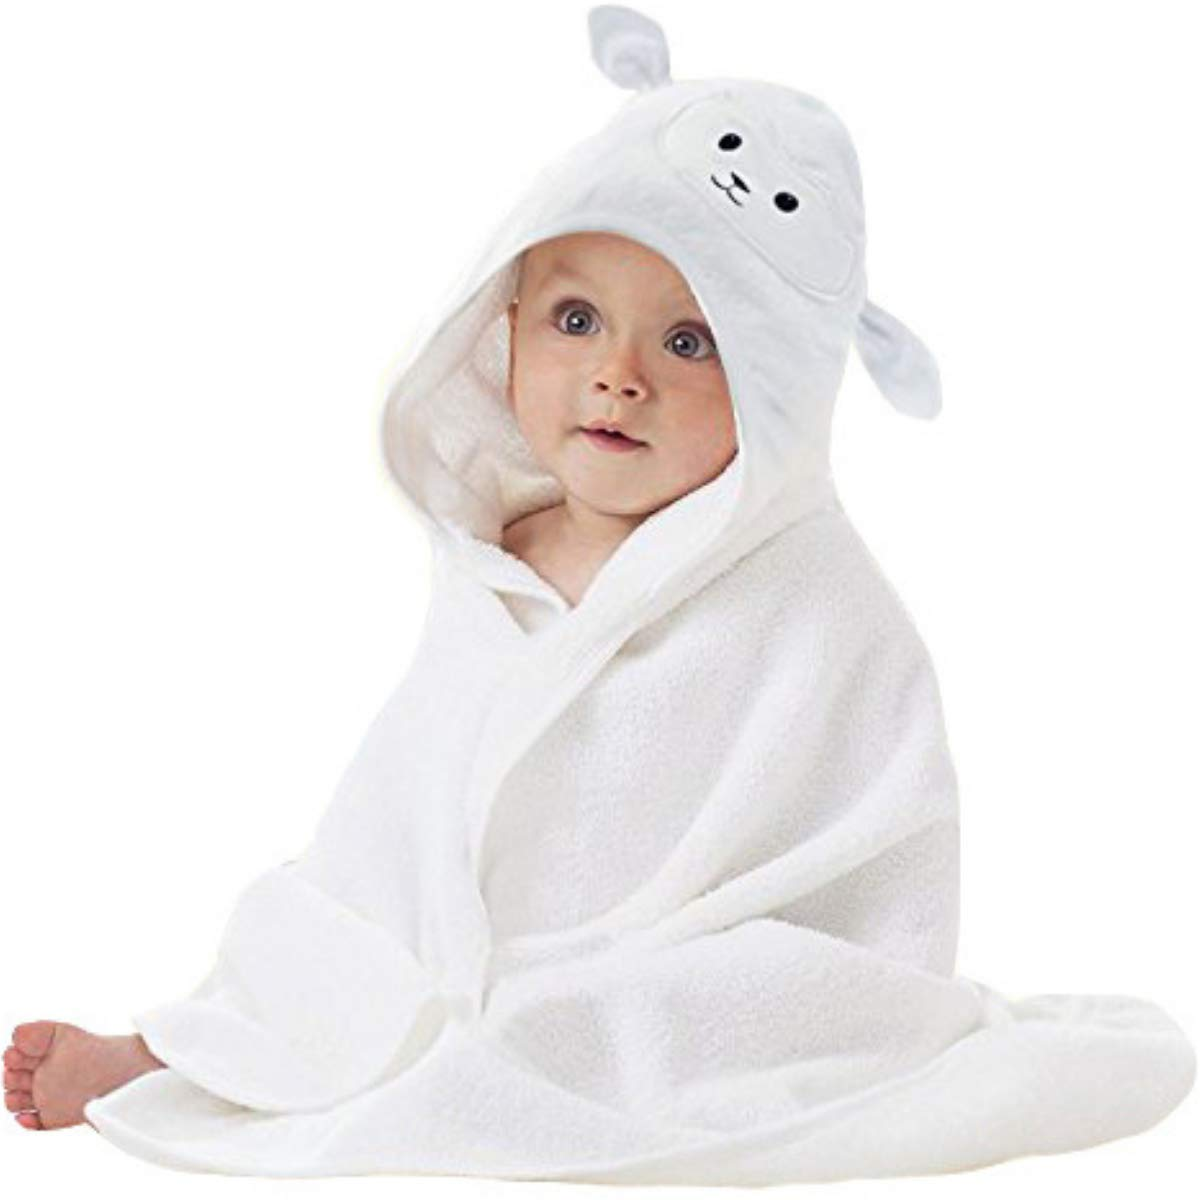 Organic Bamboo Baby Hooded Towel | Ultra Soft and Super Absorbent Toddler Hooded Bath Towel with Cute Lamb Face Design